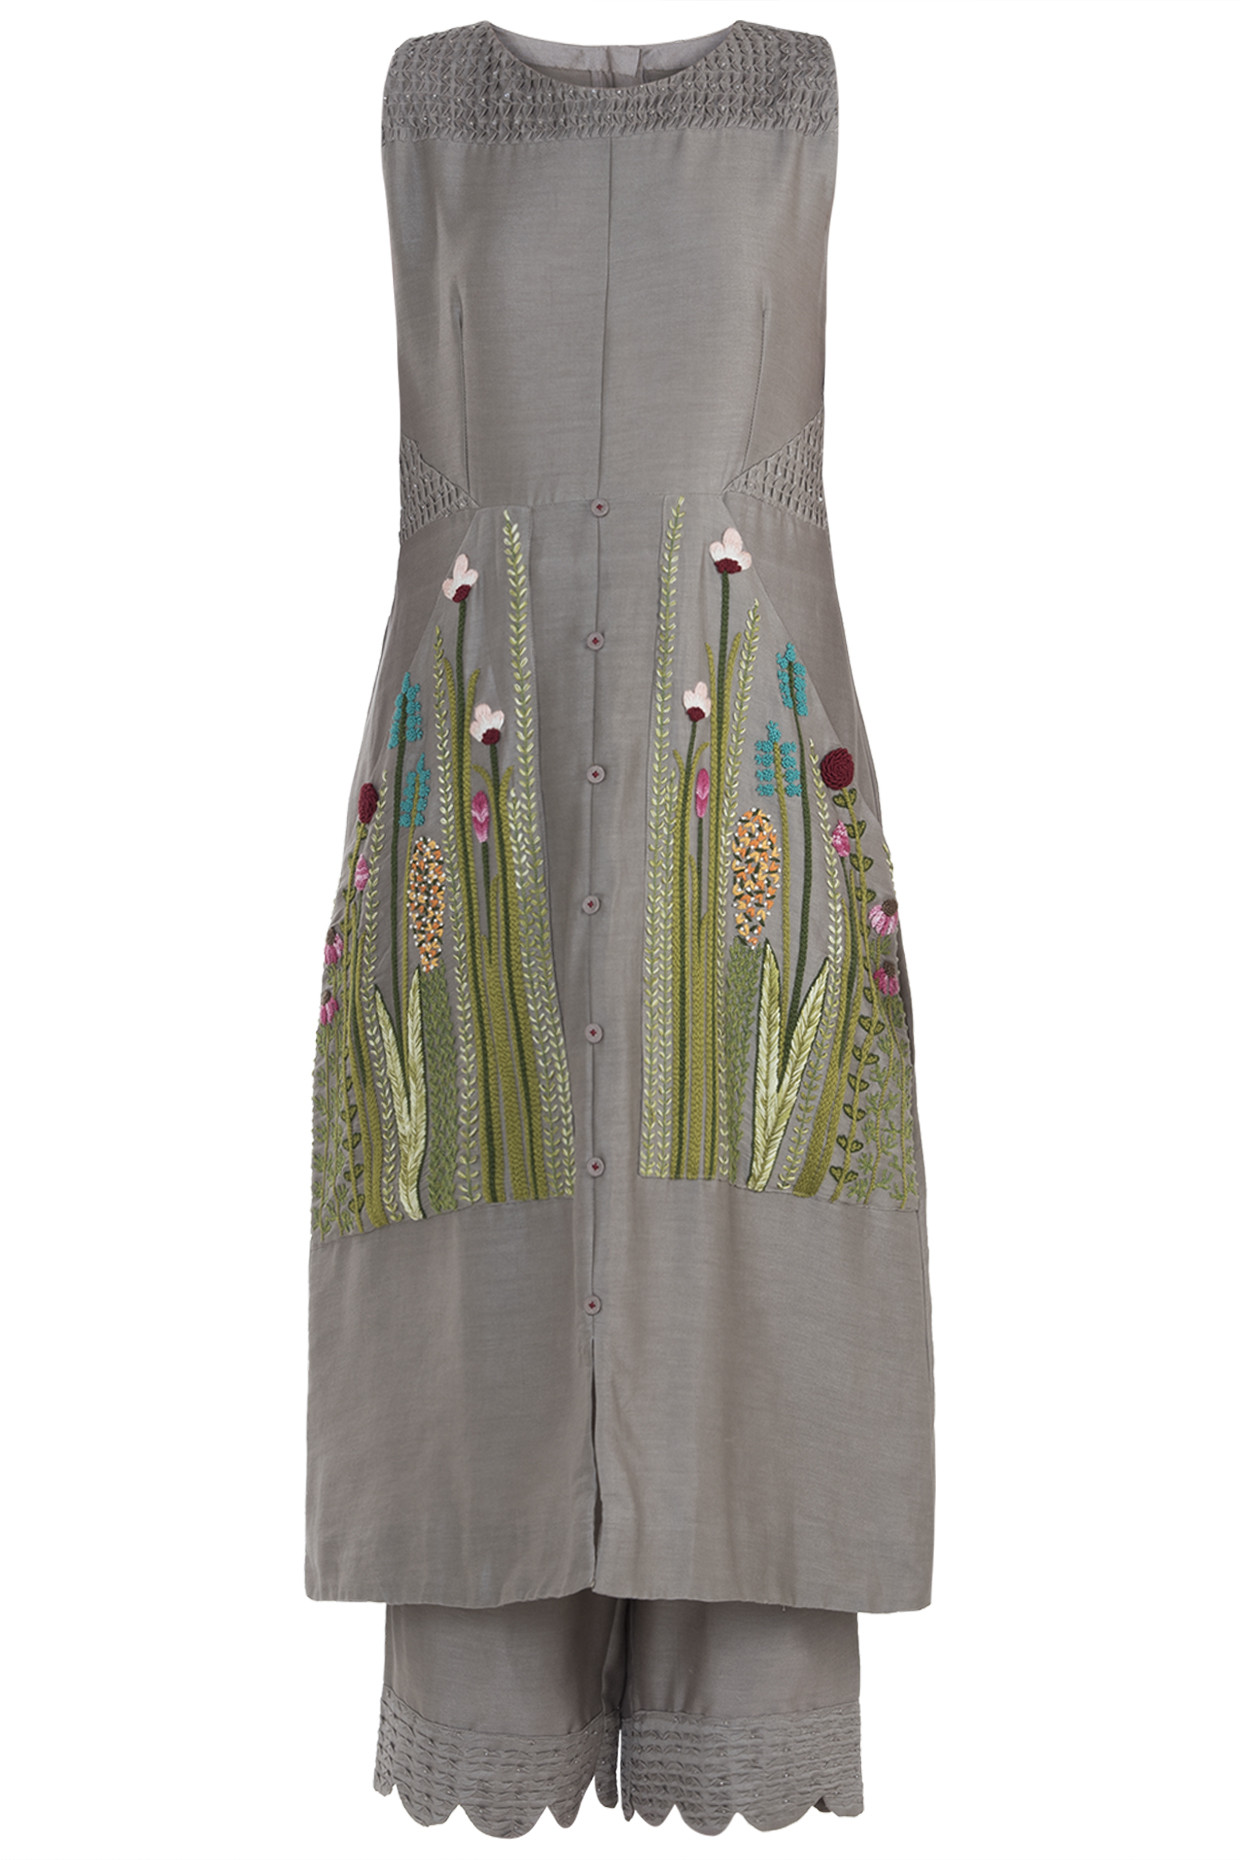 Taupe Embroidered Kurta with Pants by The Right Cut